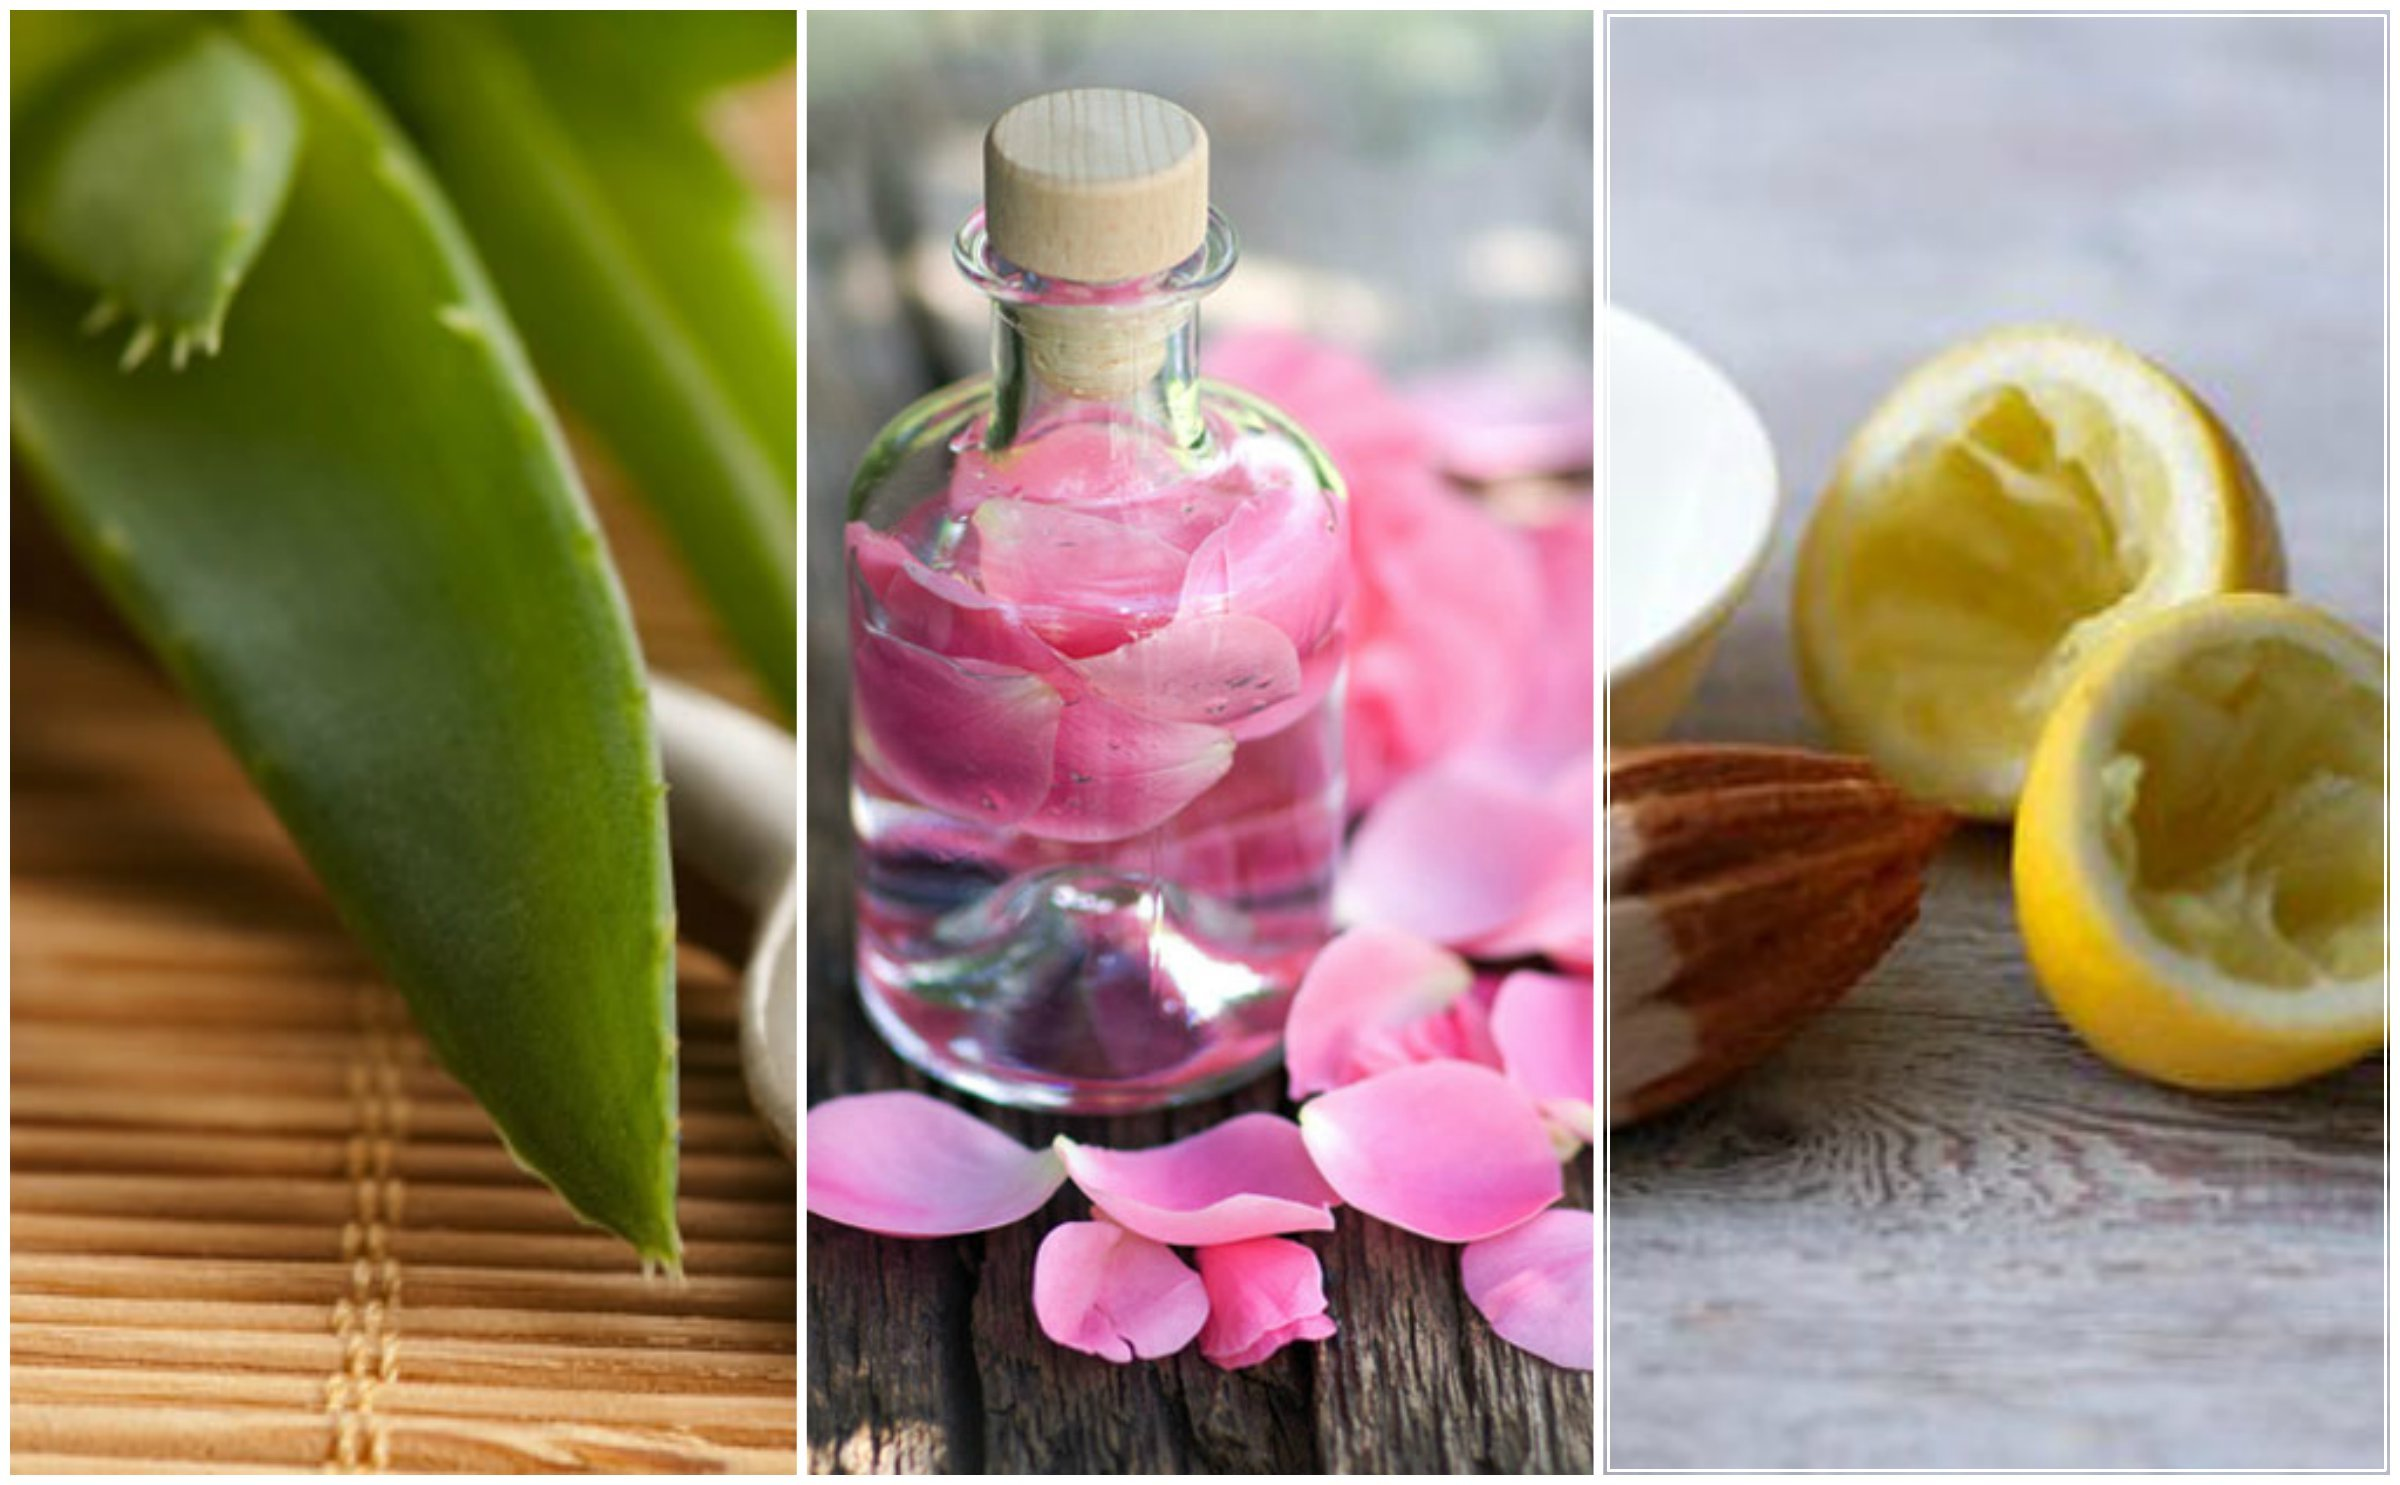 Instead of going under the needle or booking surgeries, try these natural methods. PHOTO: FILE